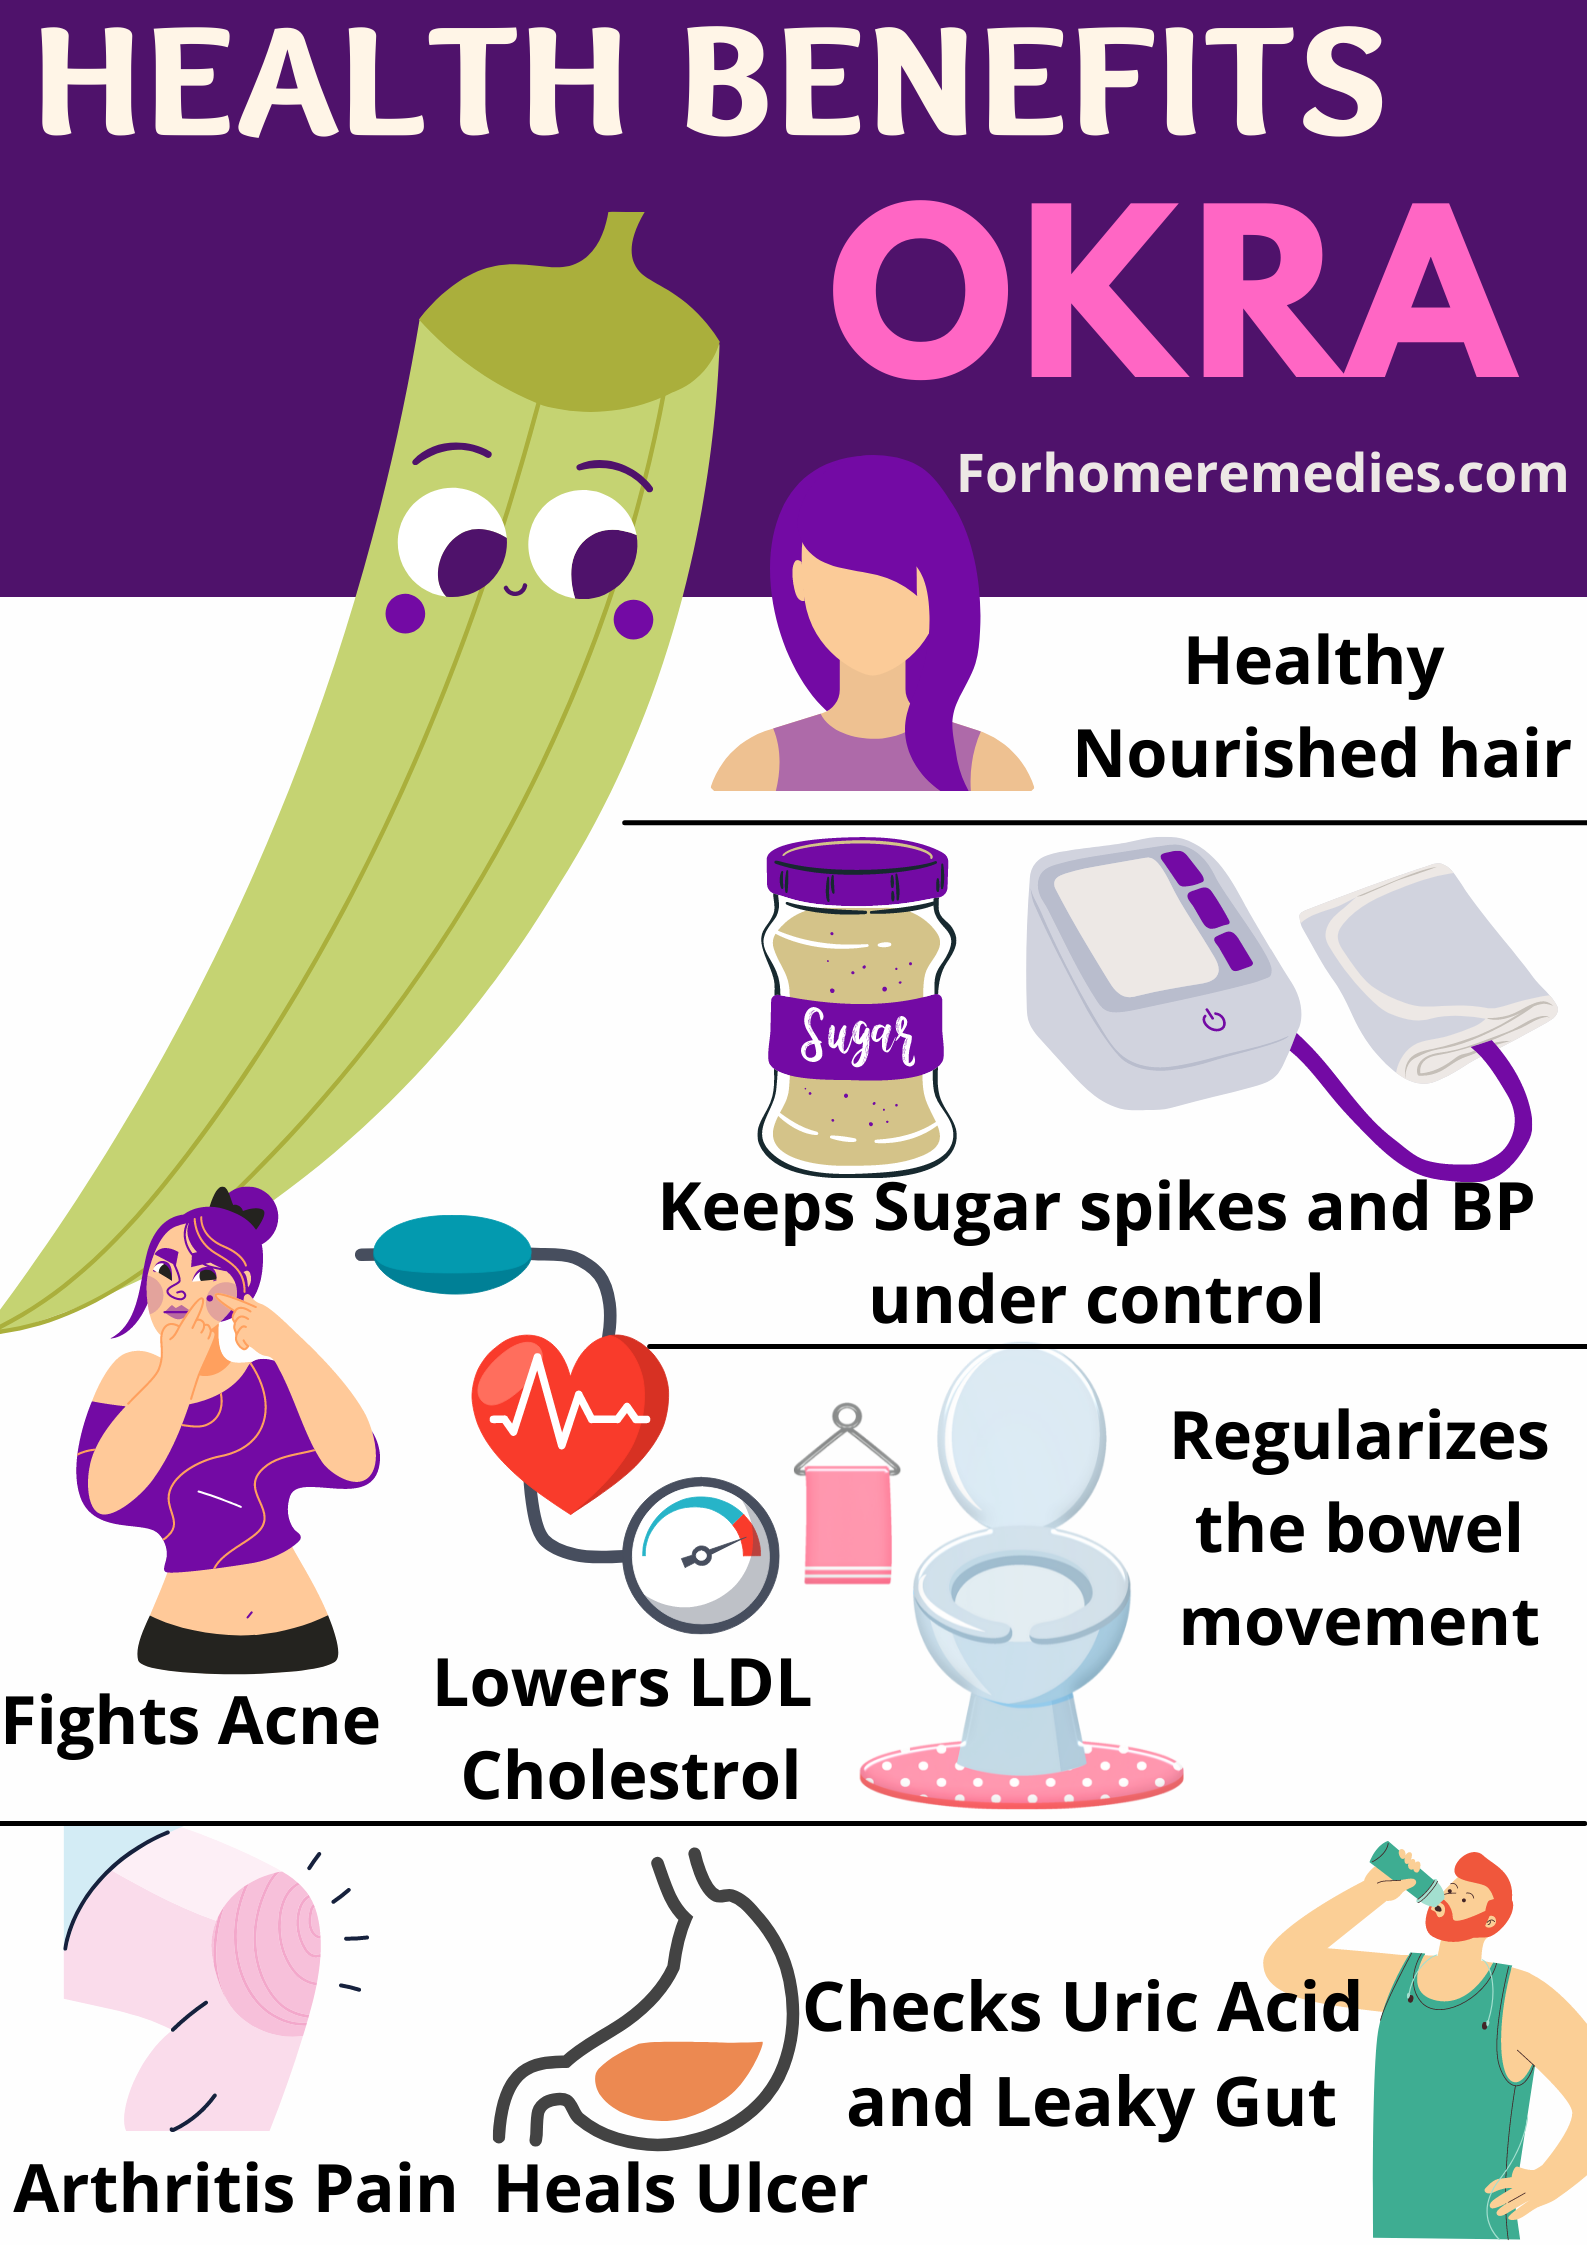 Health Benefits of Okra for Acne Ulcer Diabetes Cholesterol Kidney Stone and Hair